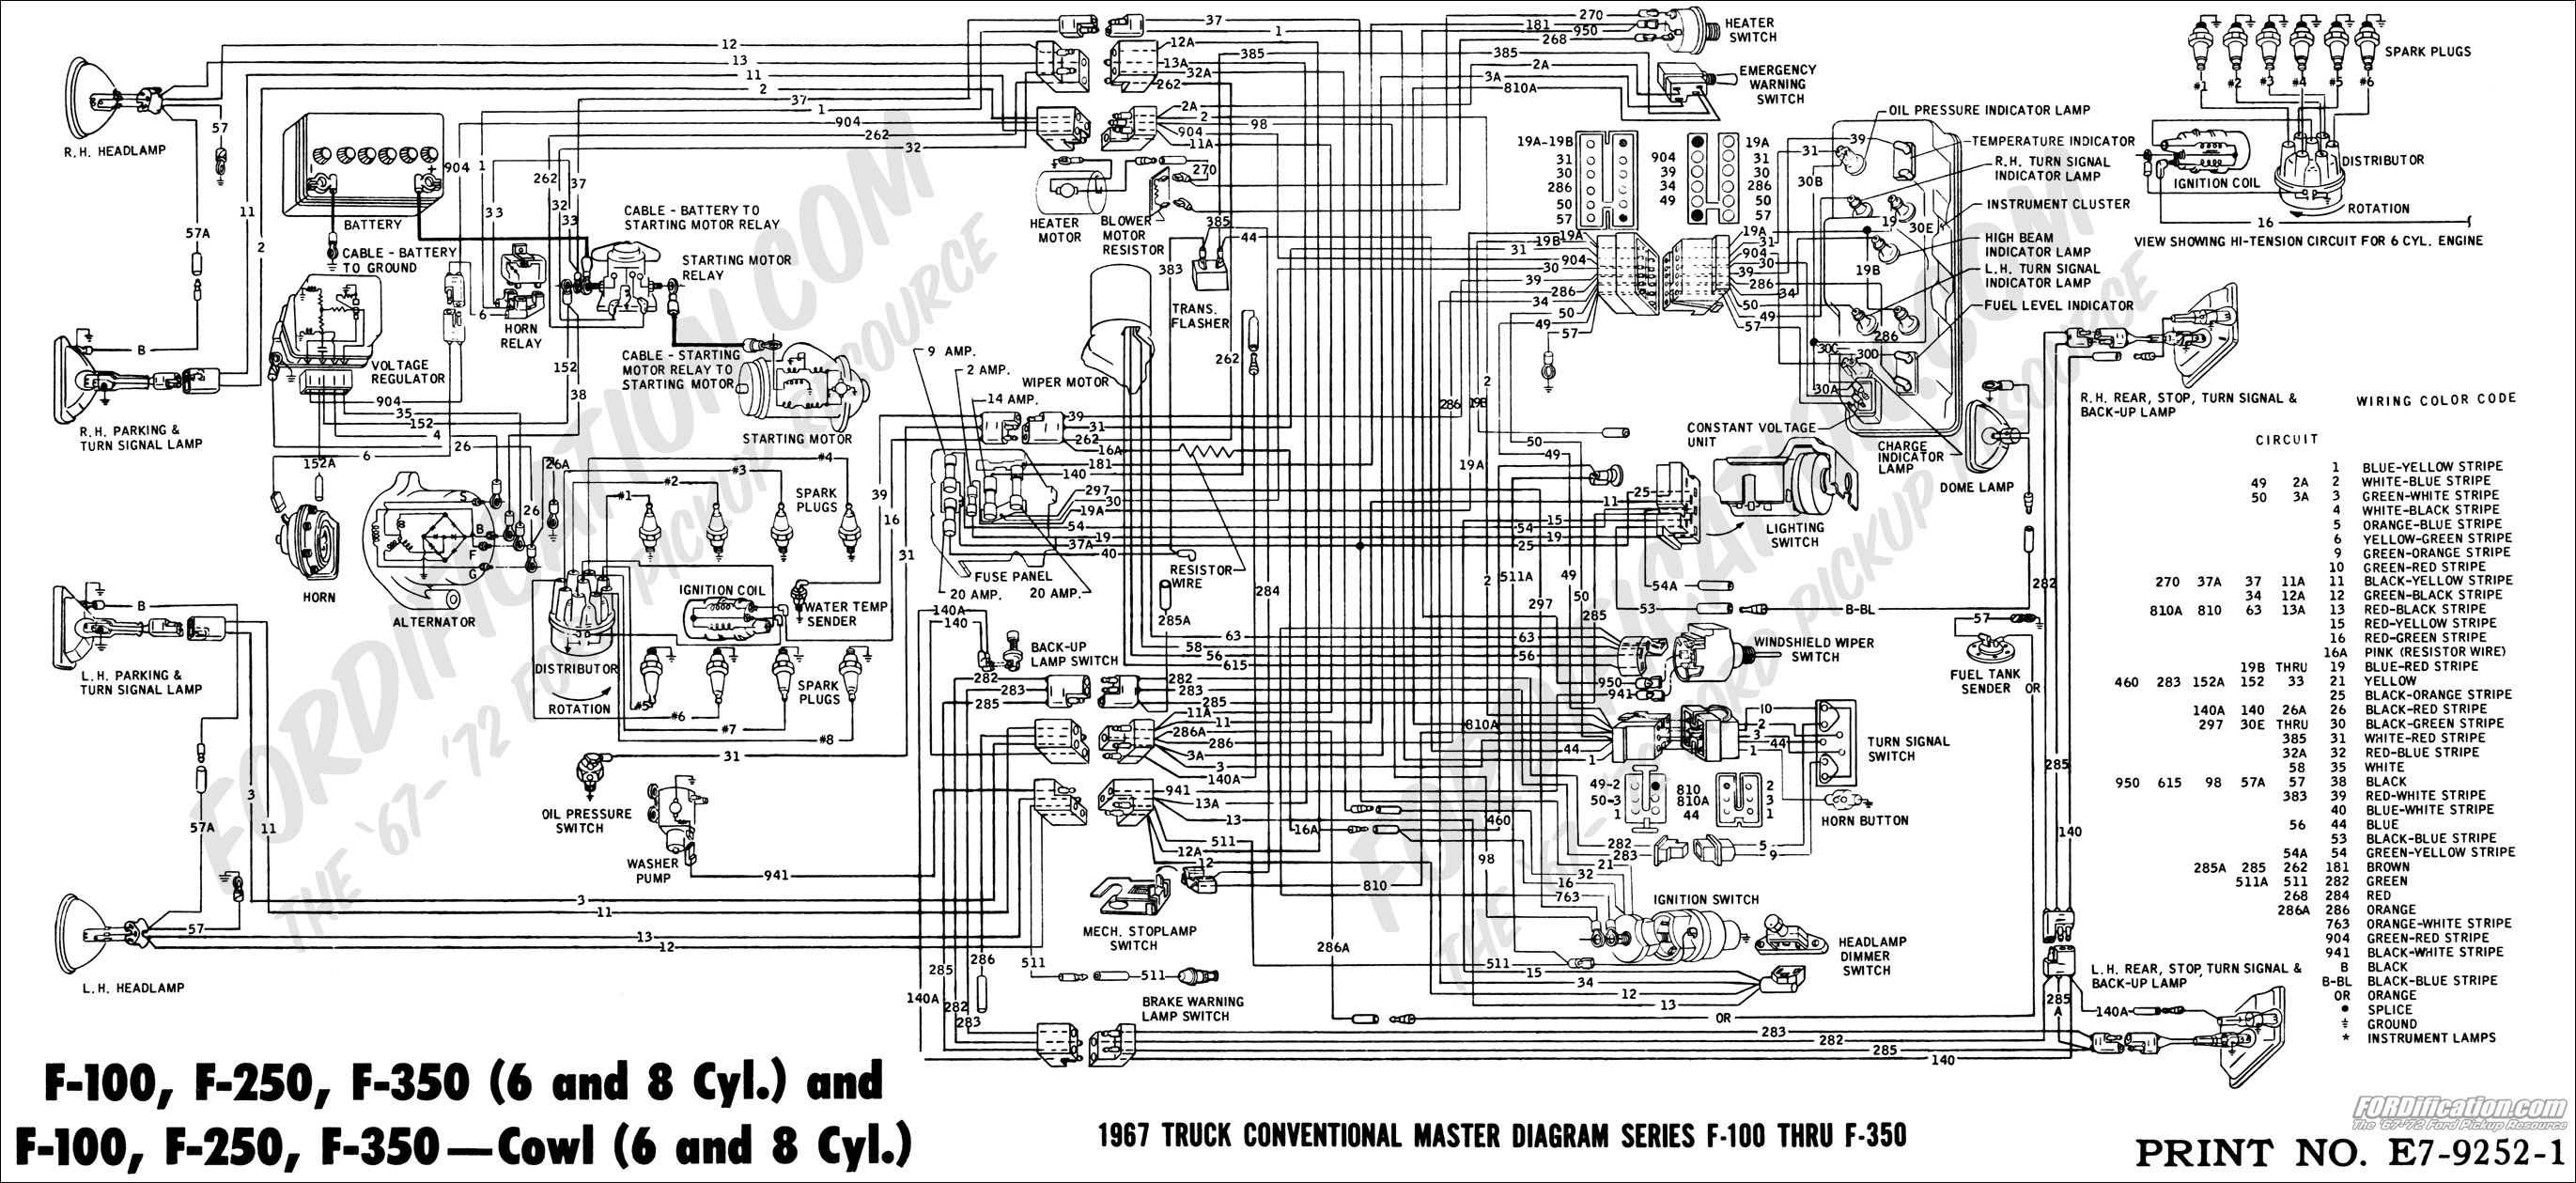 F150 Truck Diagram - Largest Wiring Diagrams • on 97 f150 solenoid, 97 grand prix wiring diagram, 97 camaro wiring diagram, 97 e150 wiring diagram, 97 f150 steering, 97 altima wiring diagram, 97 f150 window diagram, 97 f150 heater diagram, 97 f150 fuse box diagram, 97 f150 door, 97 thunderbird wiring diagram, 97 ford wiring diagram, 97 f150 6 inch lift, 97 f150 shocks diagram, 97 jetta wiring diagram, 97 4runner wiring diagram, 97 dodge wiring diagram, 97 grand marquis wiring diagram, 97 jeep wiring diagram, 97 f150 oil filter,